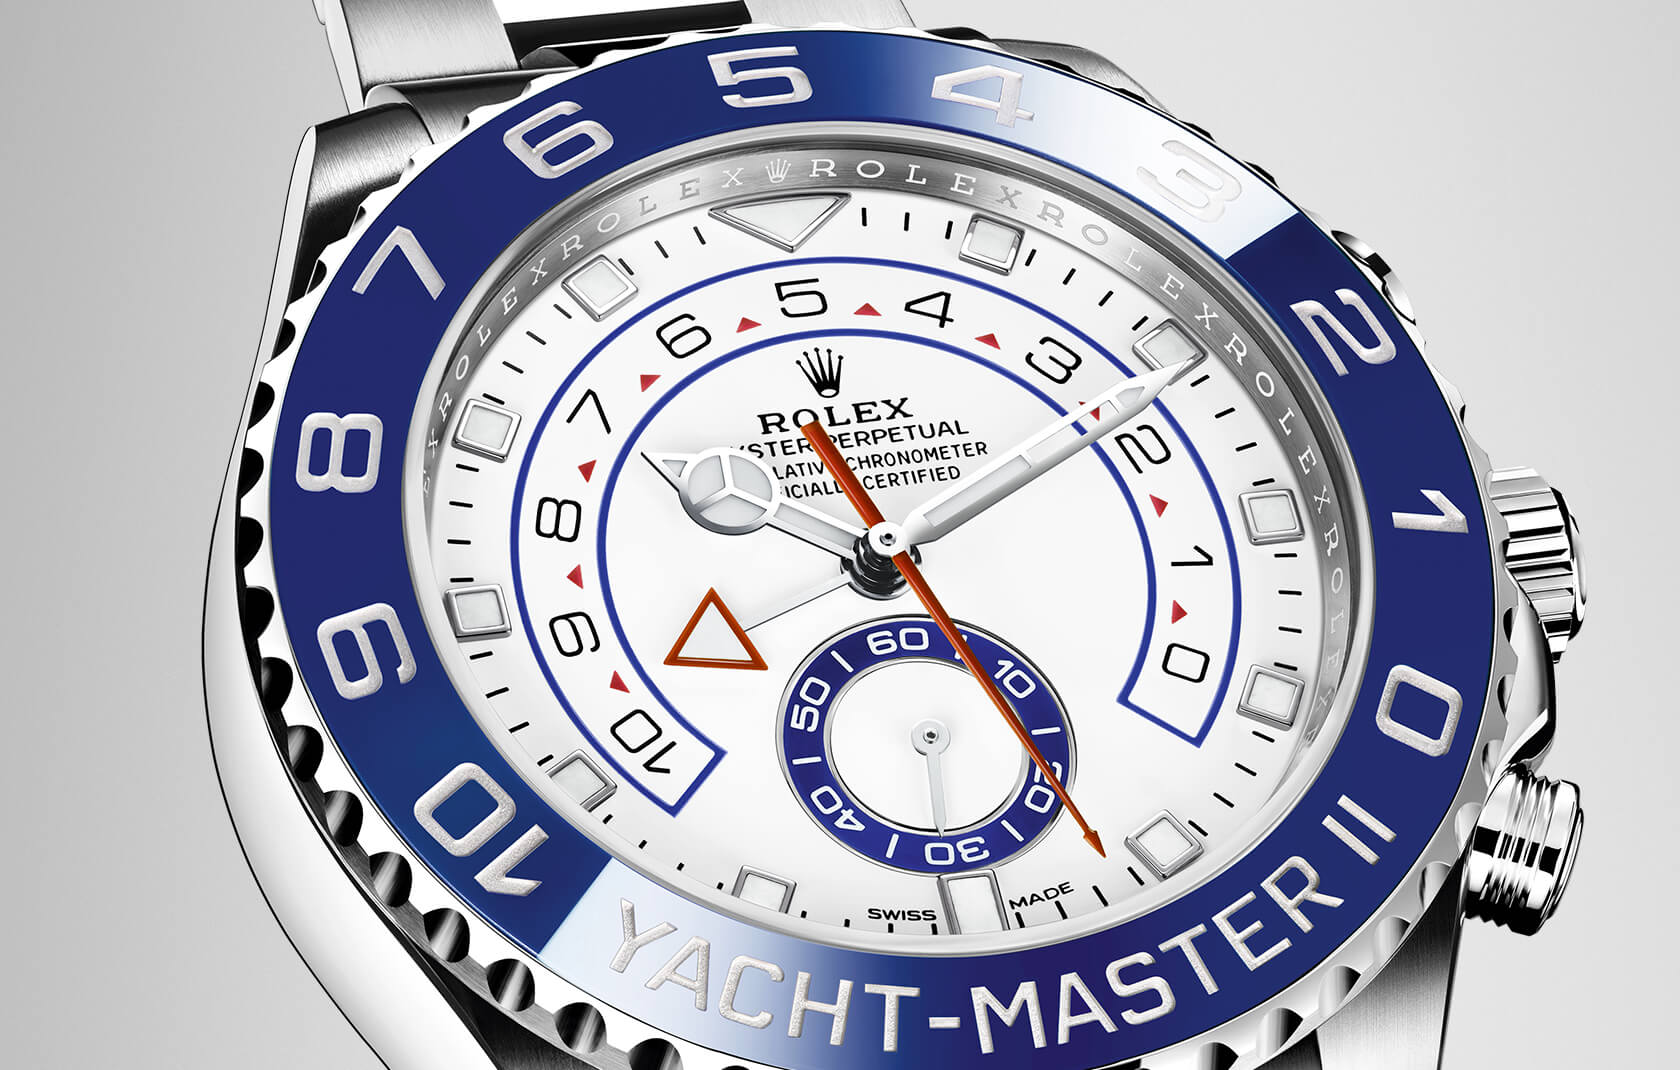 Rolex watch yachtmasterii